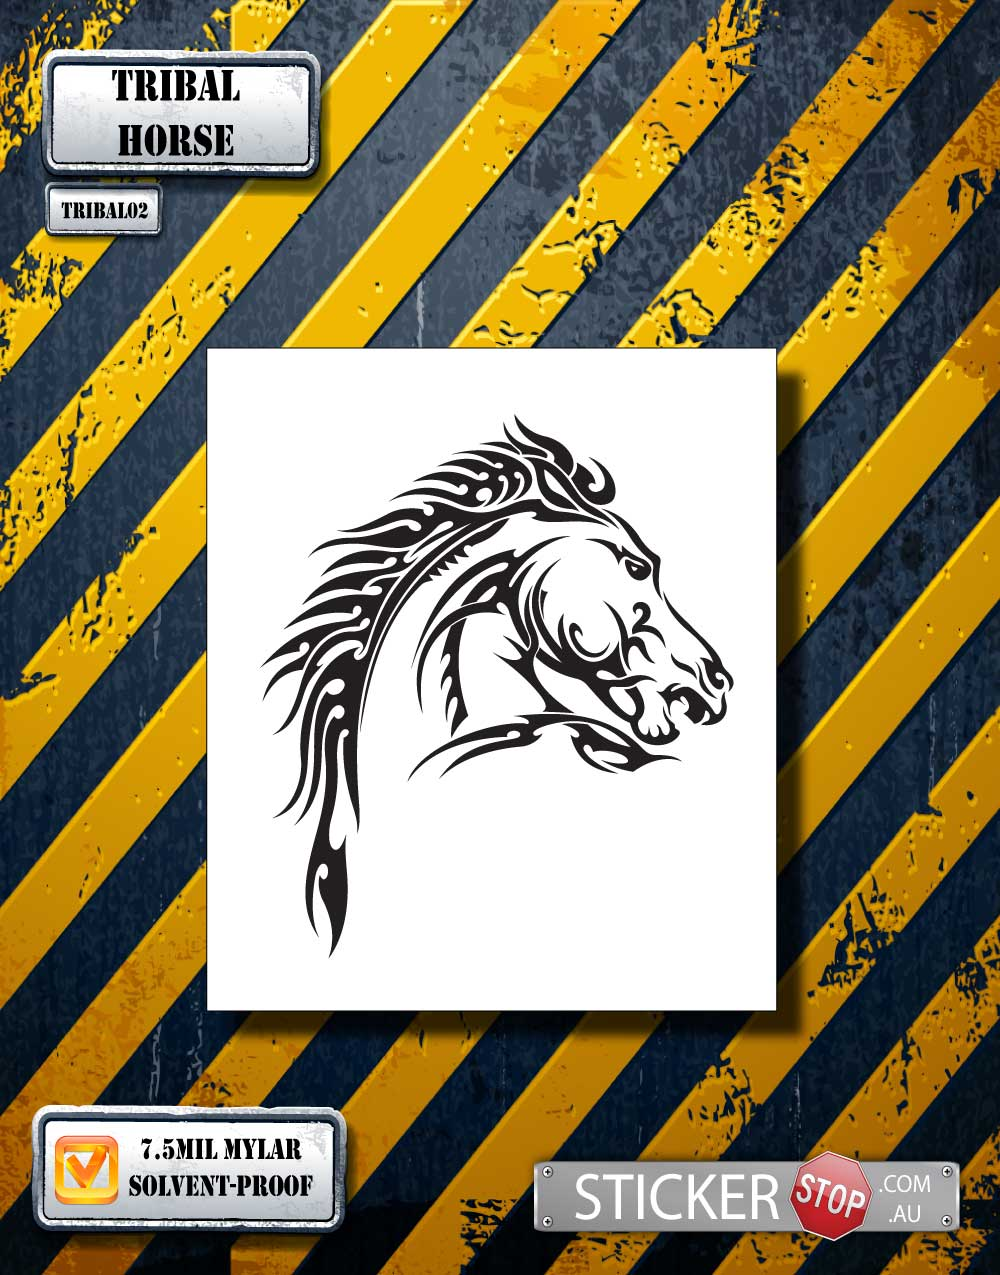 Tribal Horse Mylar Airbrush Craft Stencil